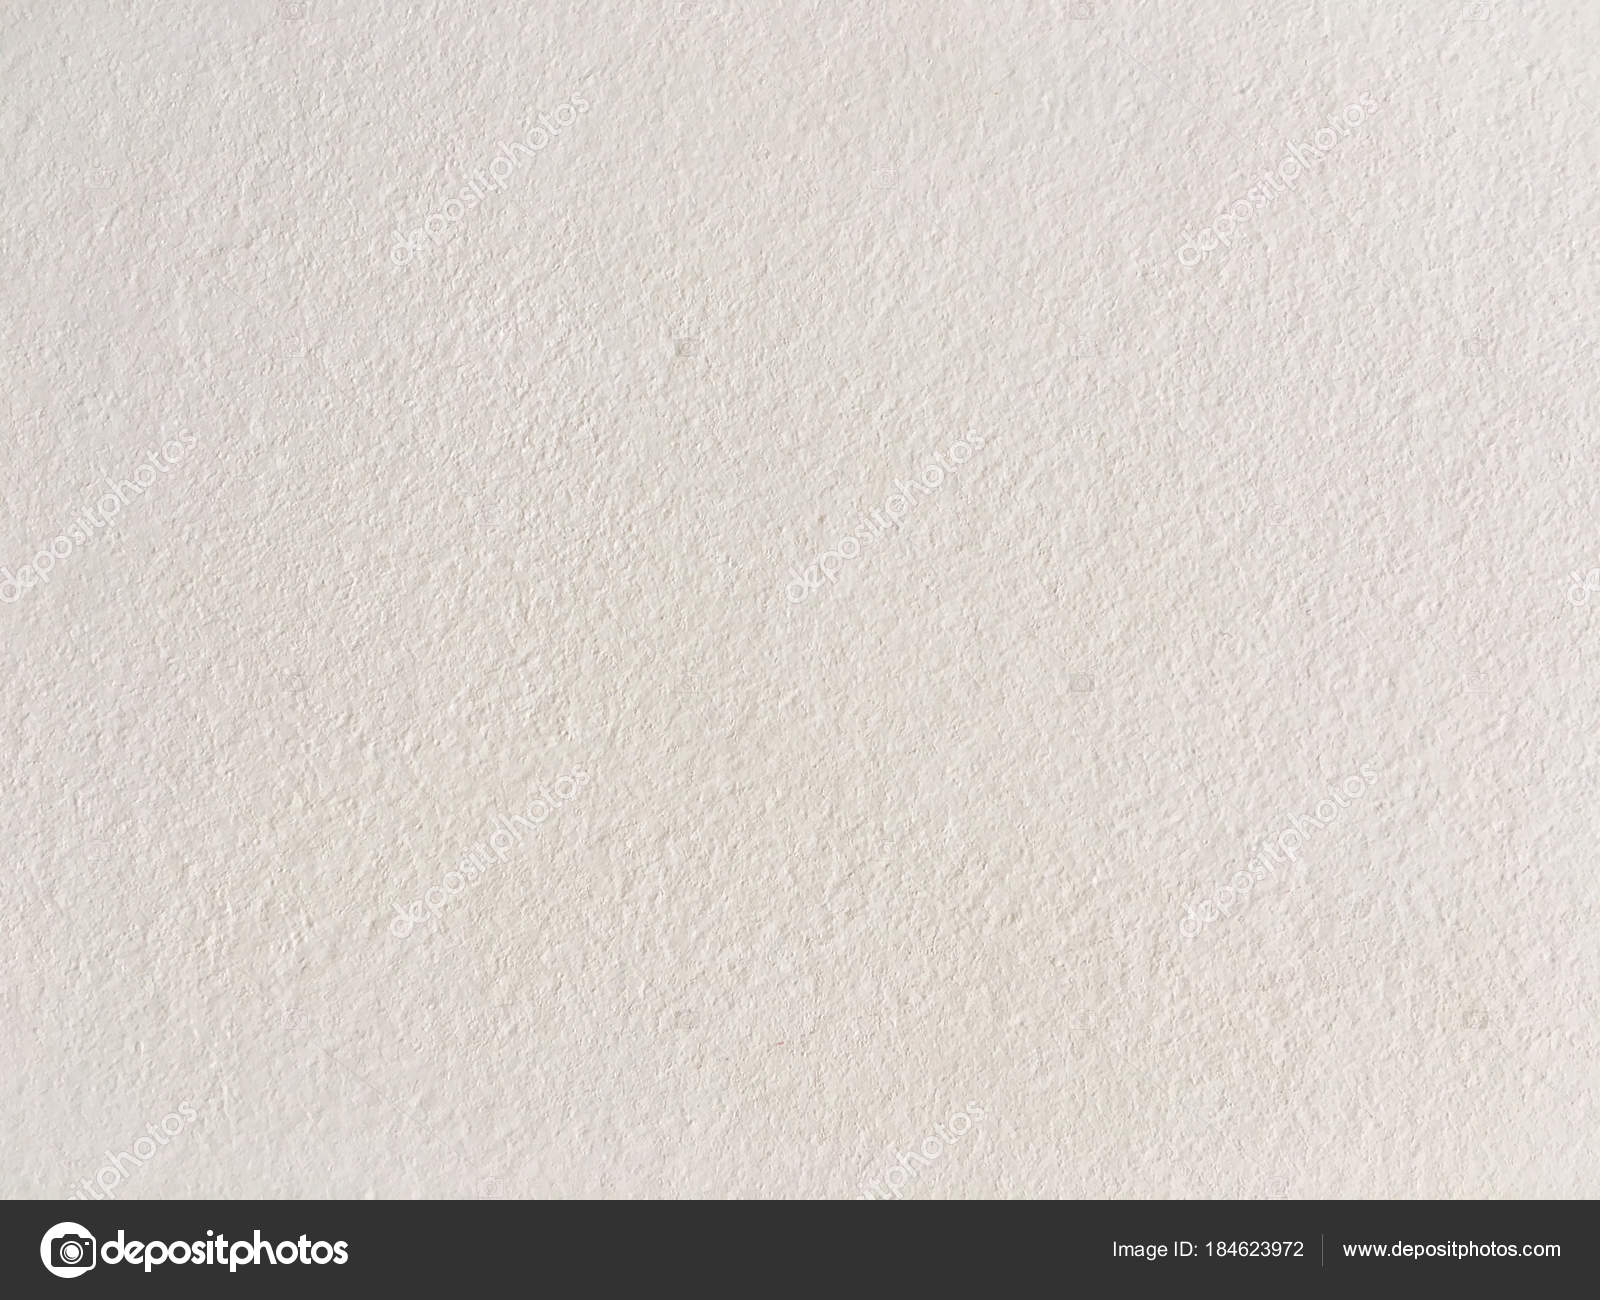 Grungy painted wall texture as background. Cracked concrete vintage ...